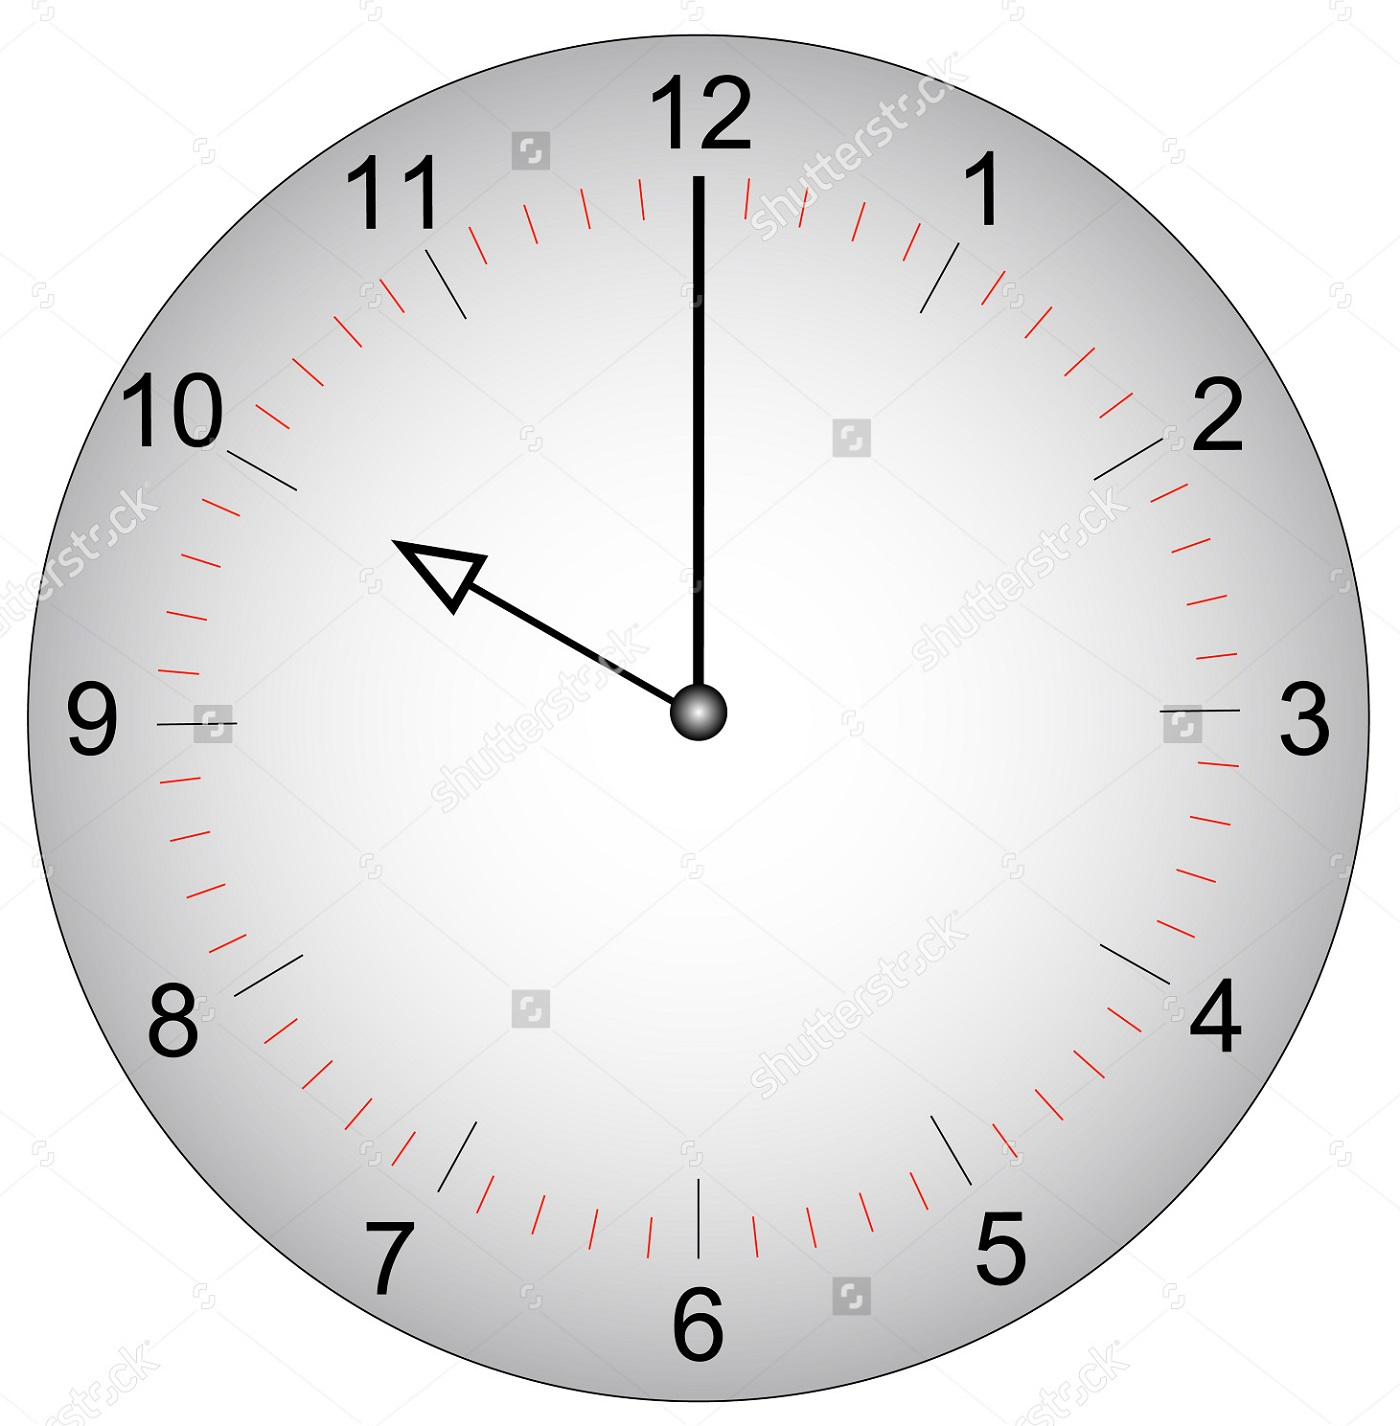 face of a clock with minutes marked